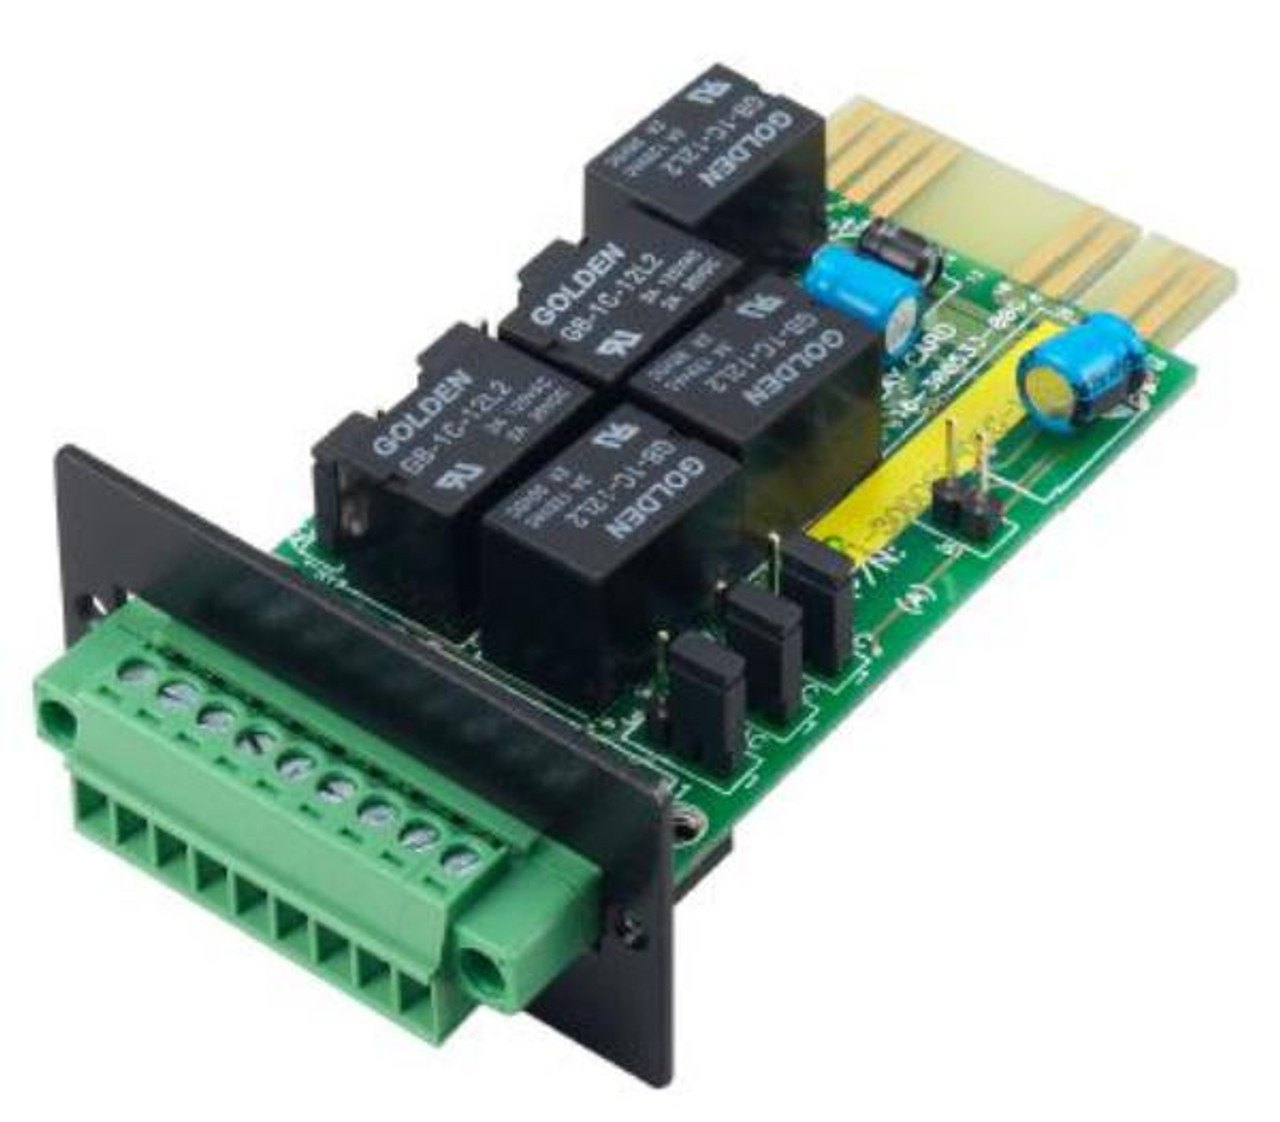 Product image for PowerShield AS400 Dry Relay Communication Card for PSC1000, PSC2000 PowerShield UPS | CX Computer Superstore